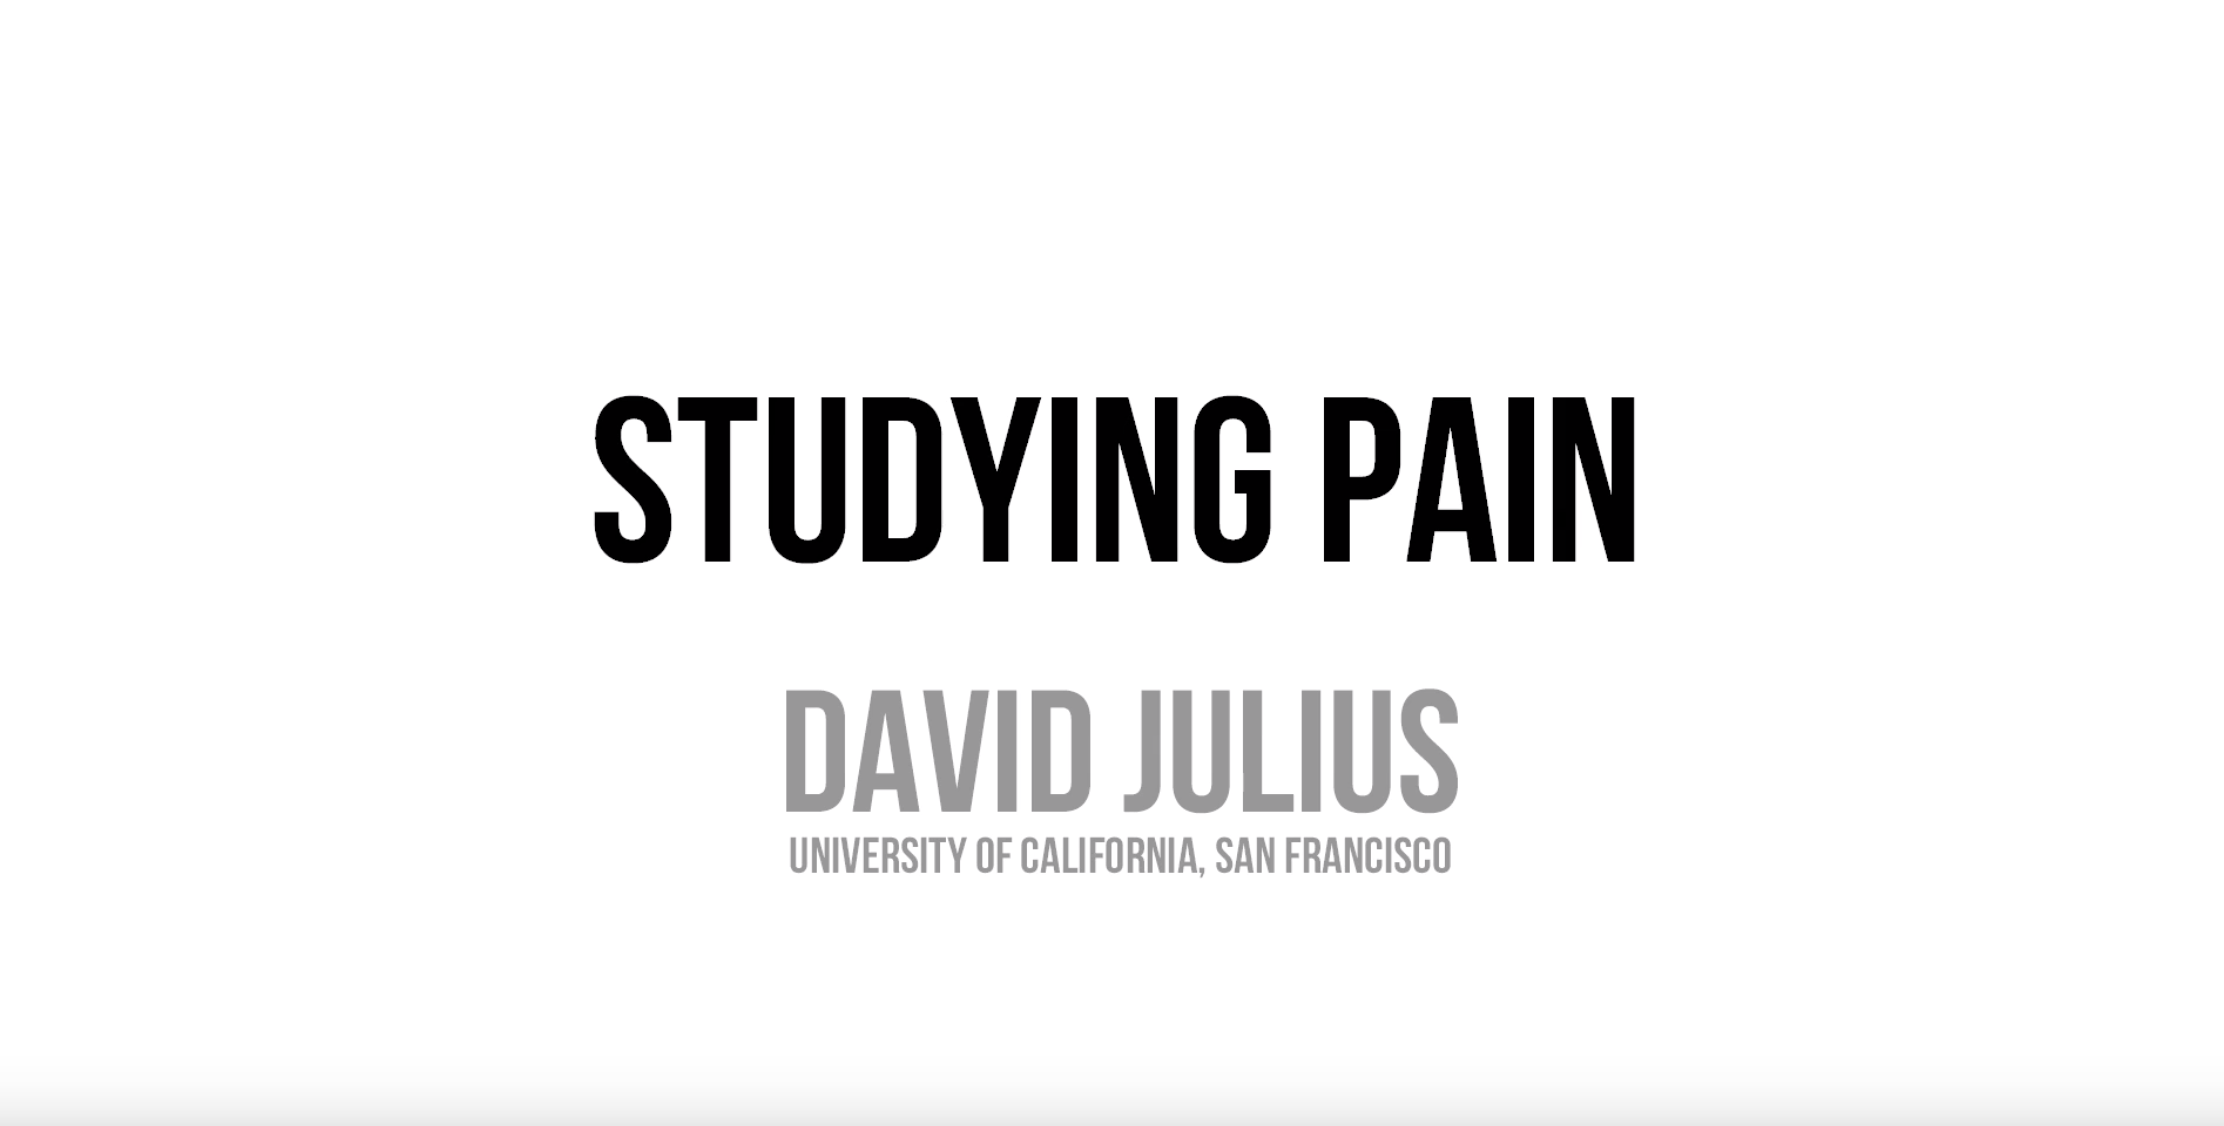 Studying Pain: An interview of David Julius by Jessica Lessin